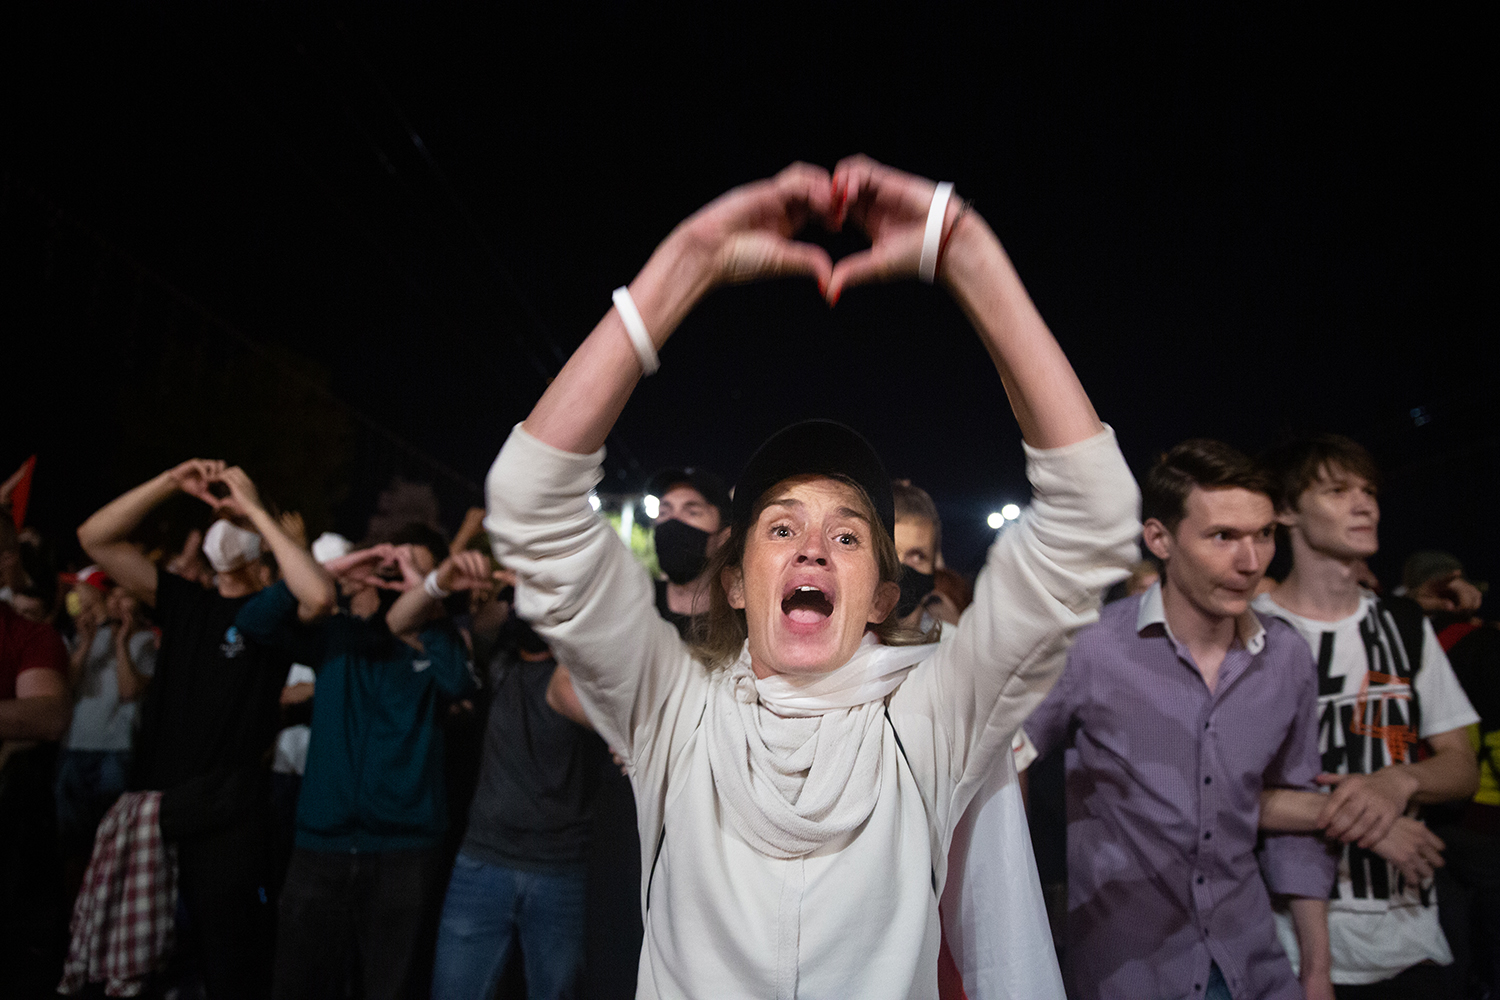 A woman raises her hands to form a heart—the symbol demonstrators have used to show their peaceful intentions—and begs police to put down their weapons and join protesters in Minsk on Aug. 9.